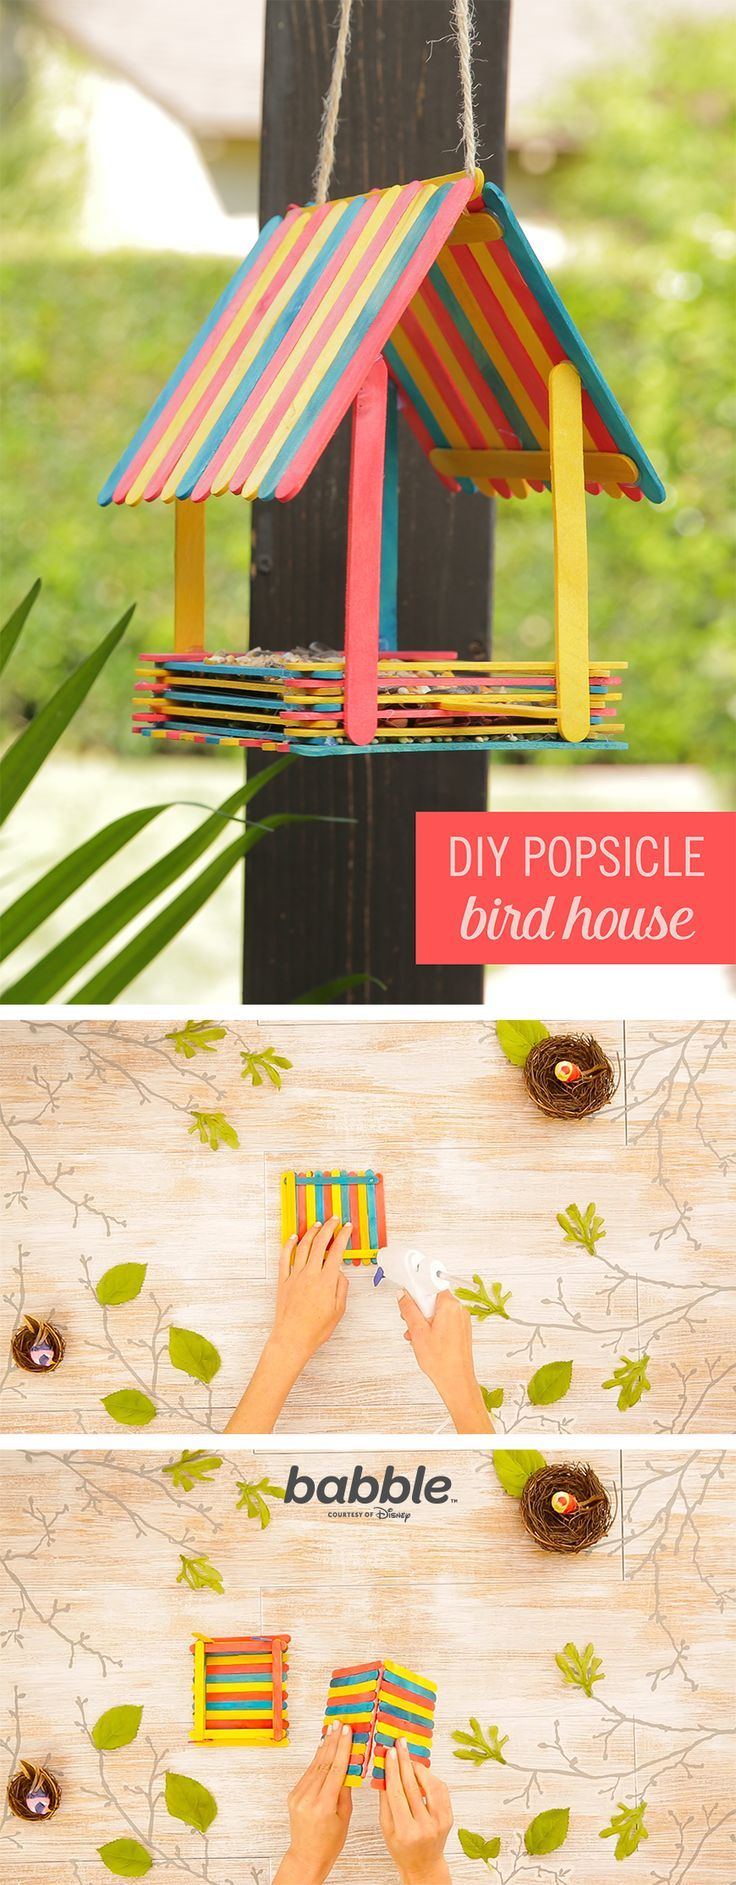 Some colorful popsicle sticks, hot glue, and rope can transform into a fun DIY bird house. Grab your little ones and have some fun with this craft.